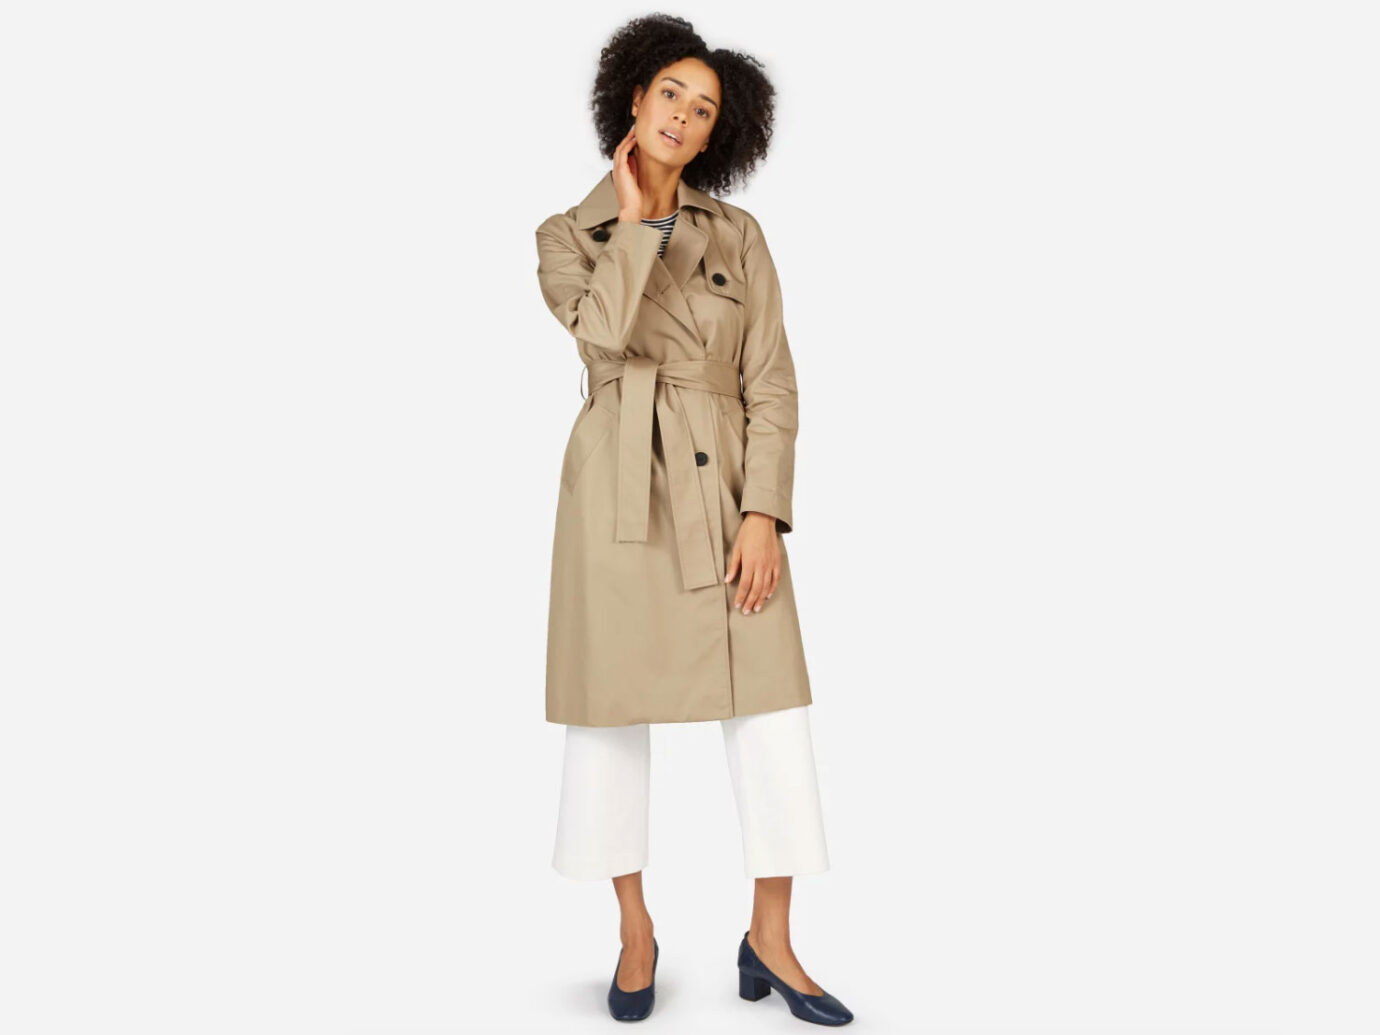 Everlane The Drape Trench Coat